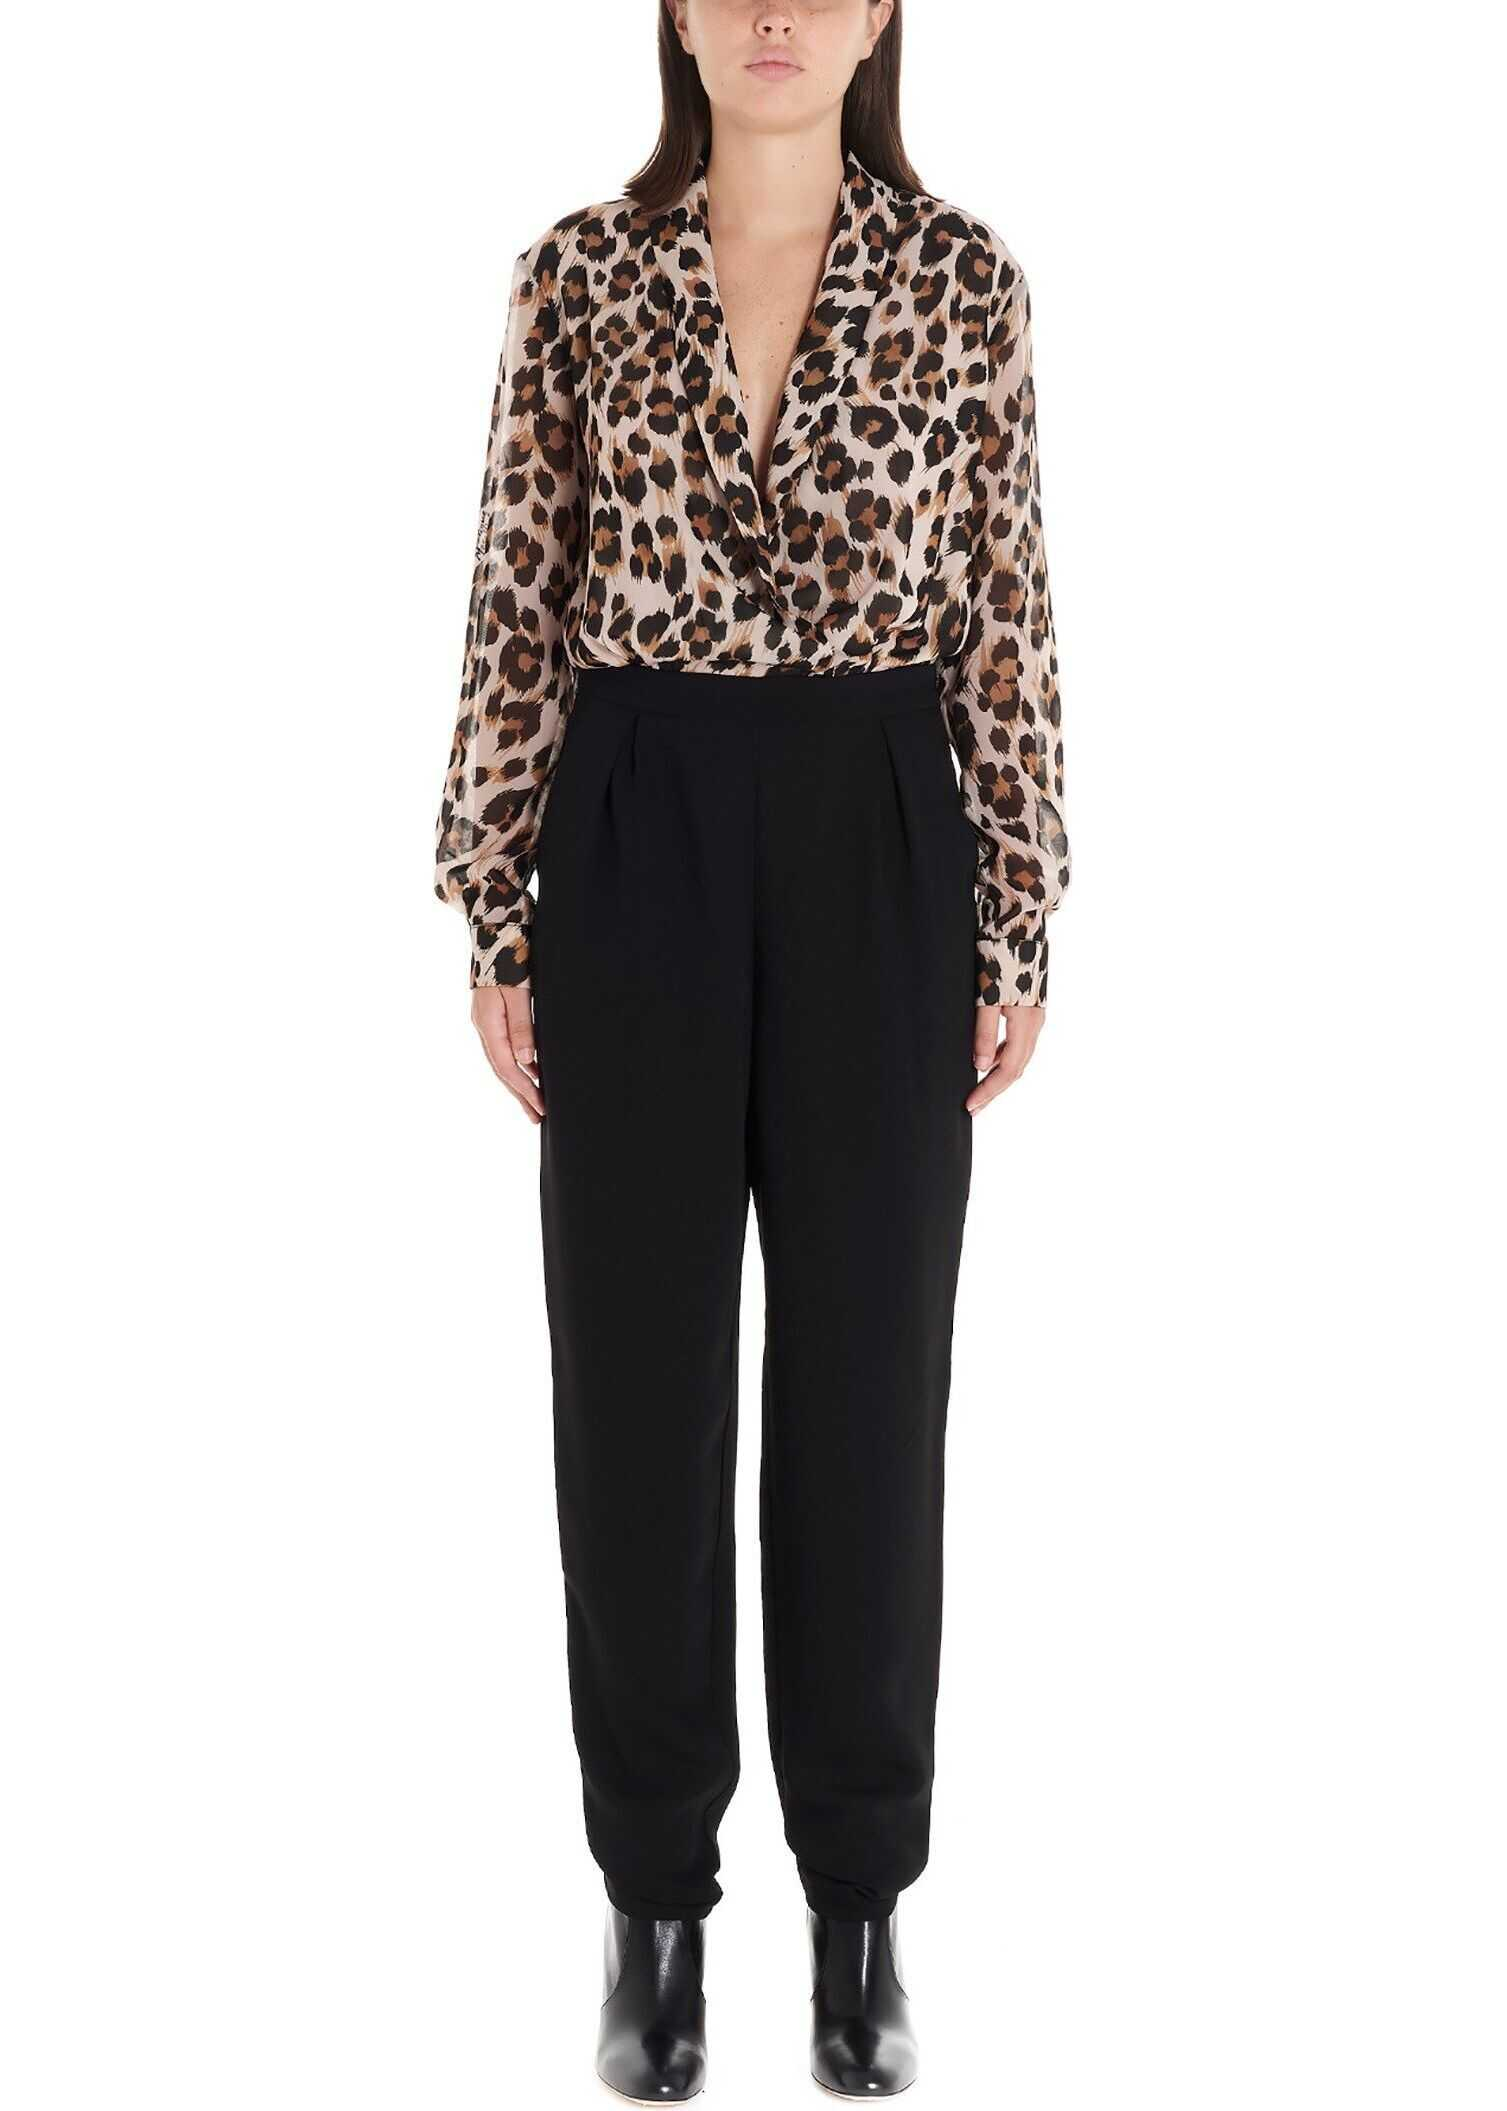 LOVE Moschino Polyester Jumpsuit BROWN